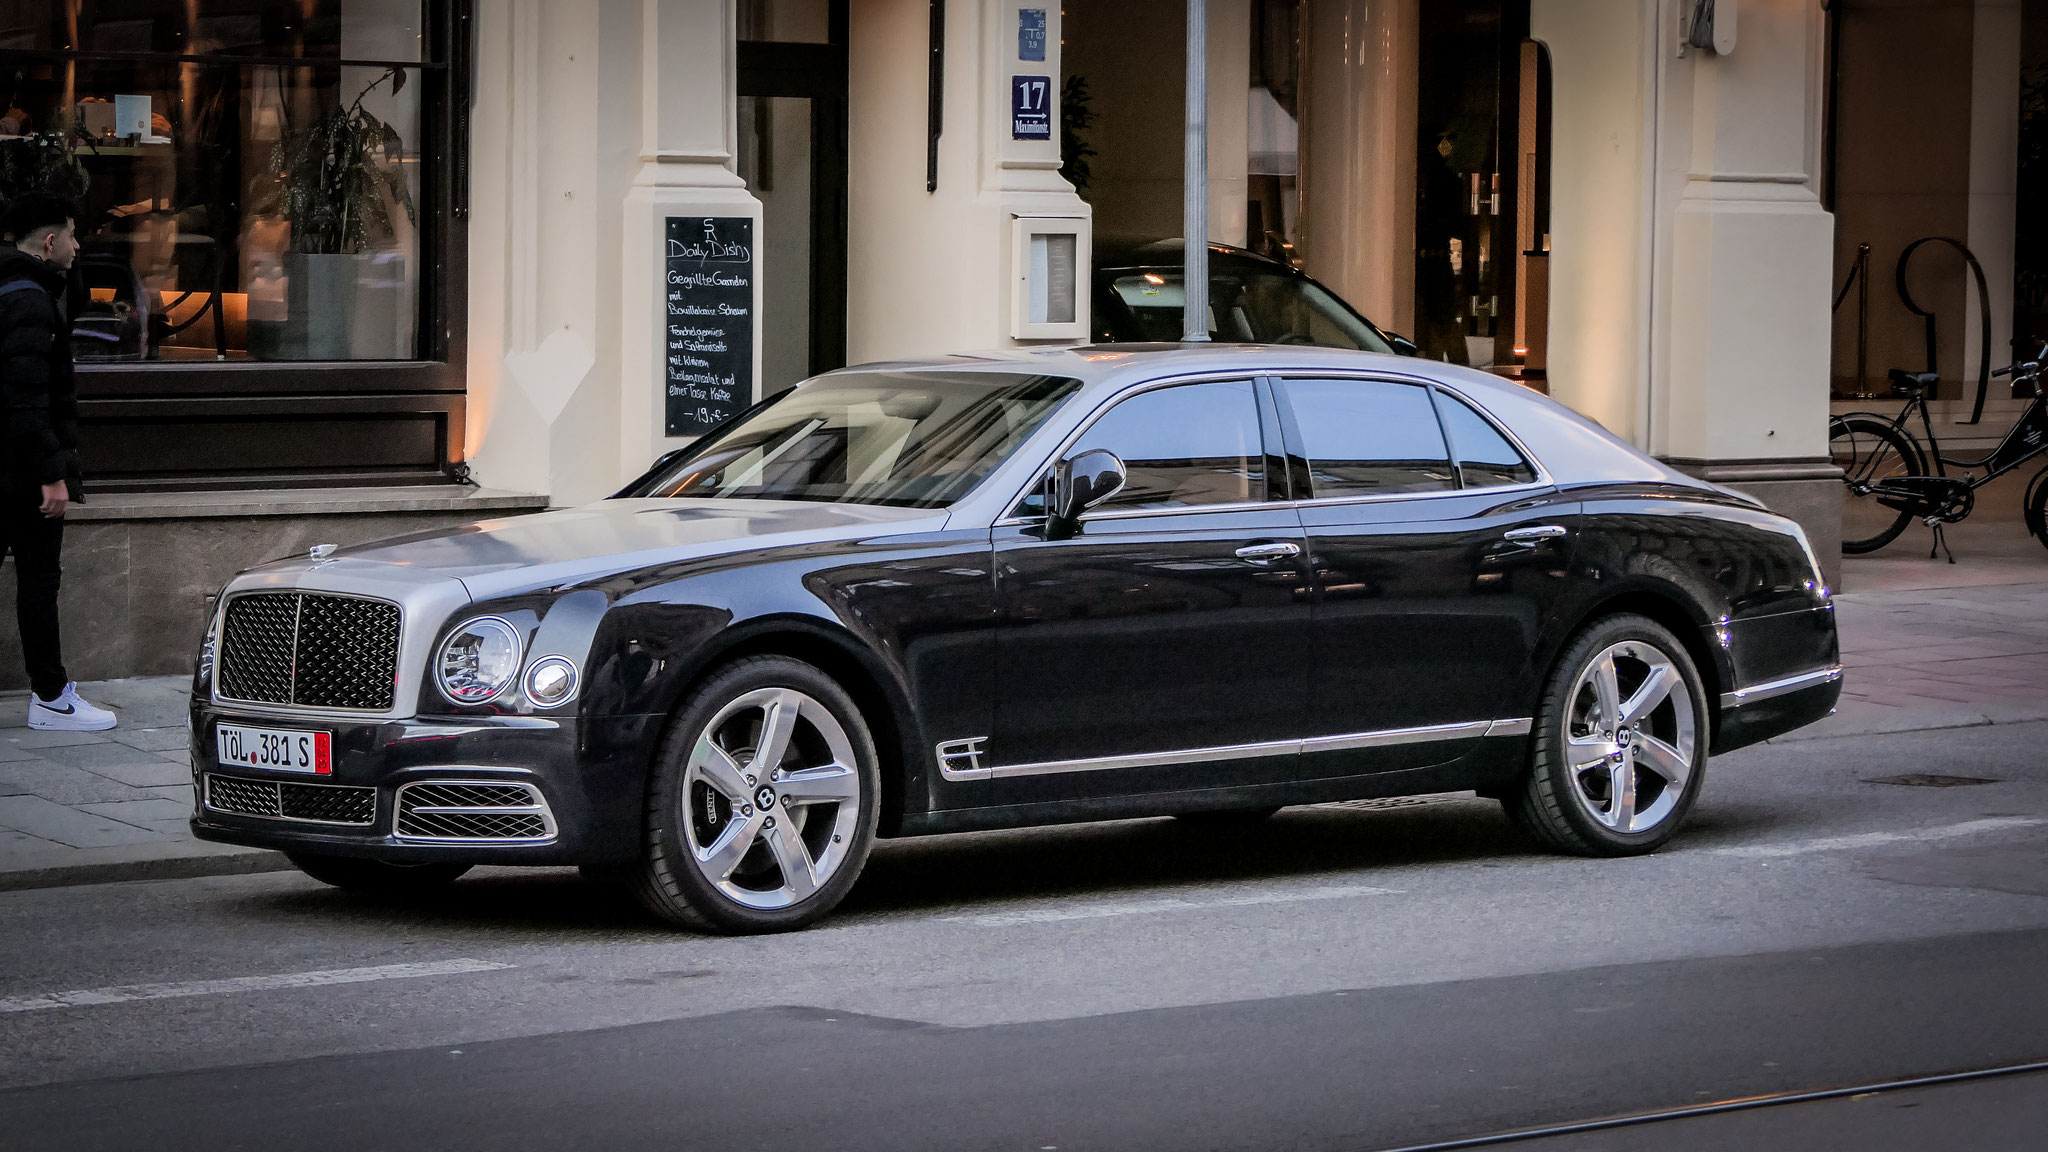 Bentley Mulsanne - TÖL-381-S